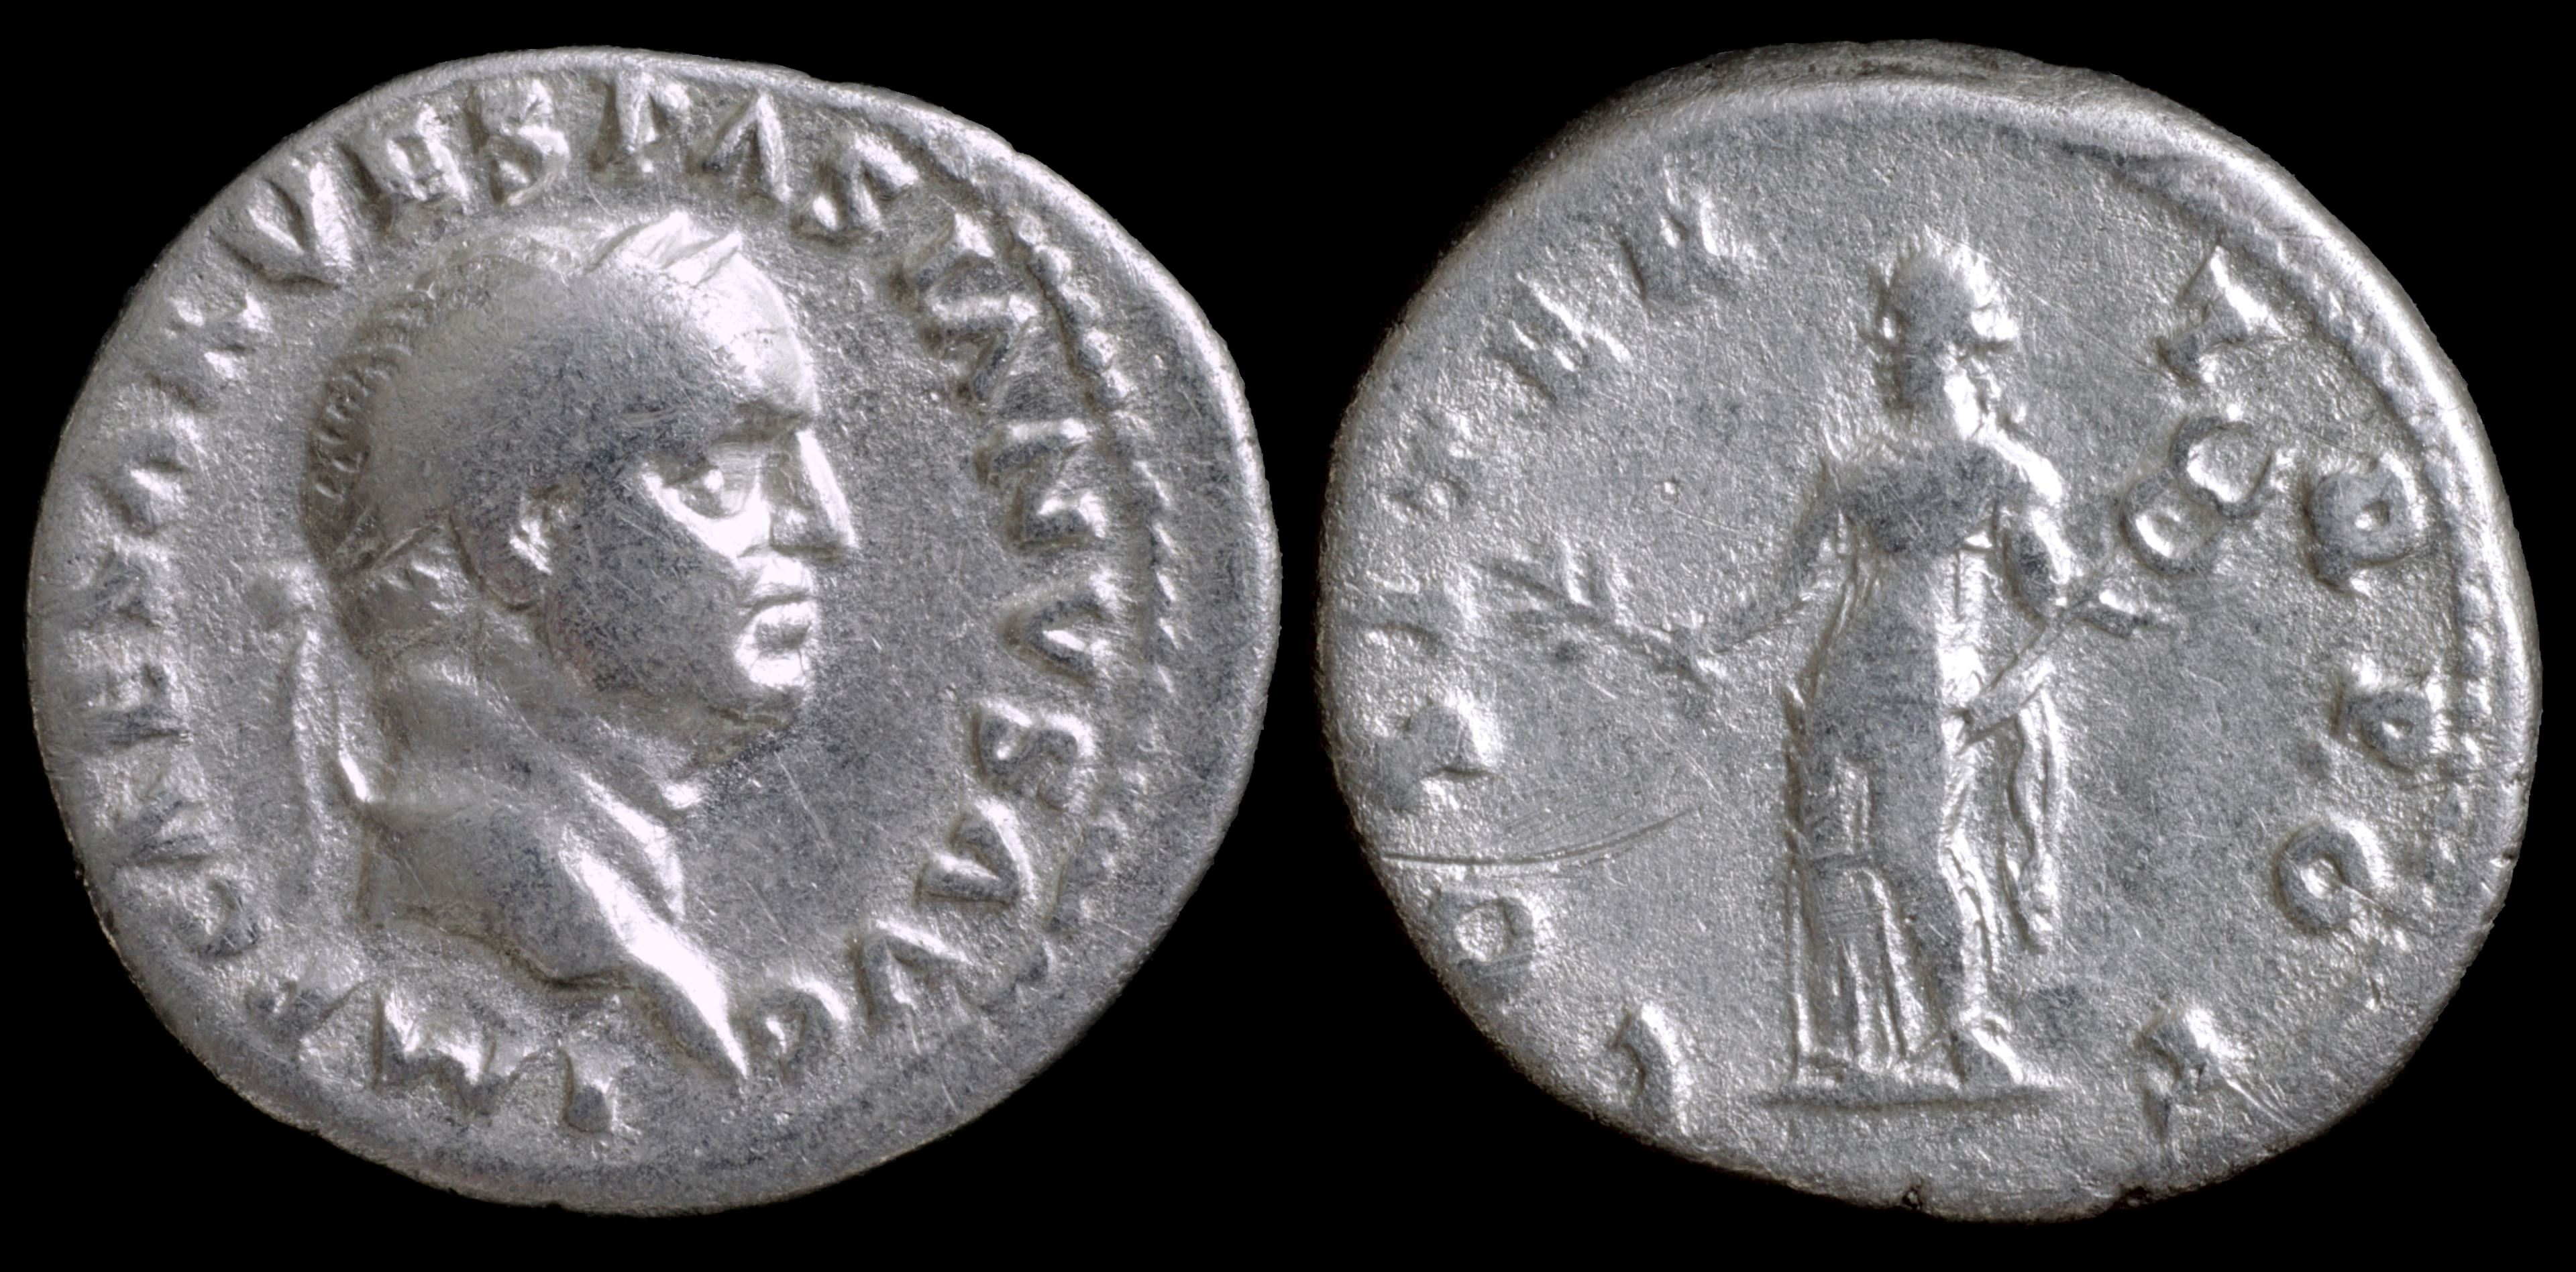 /Files/Images/Coinsite/CoinDB/16_Vespasian_Pax.jpg